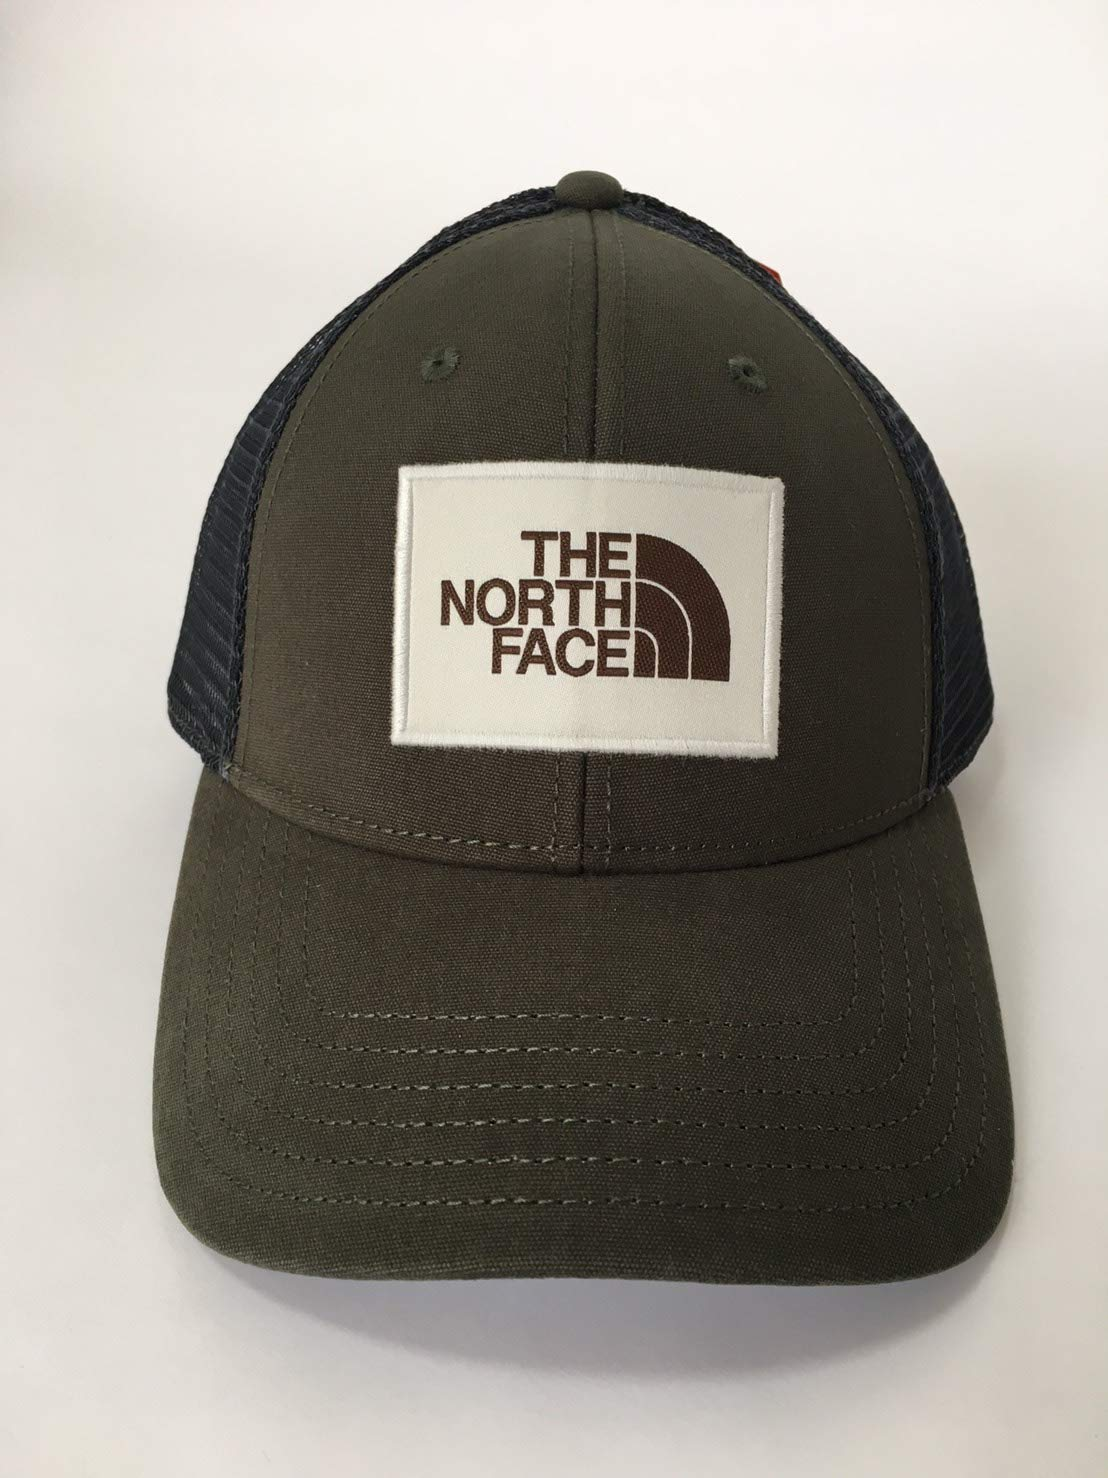 The North Face Men's Mudder Trucker Hat by The North Face